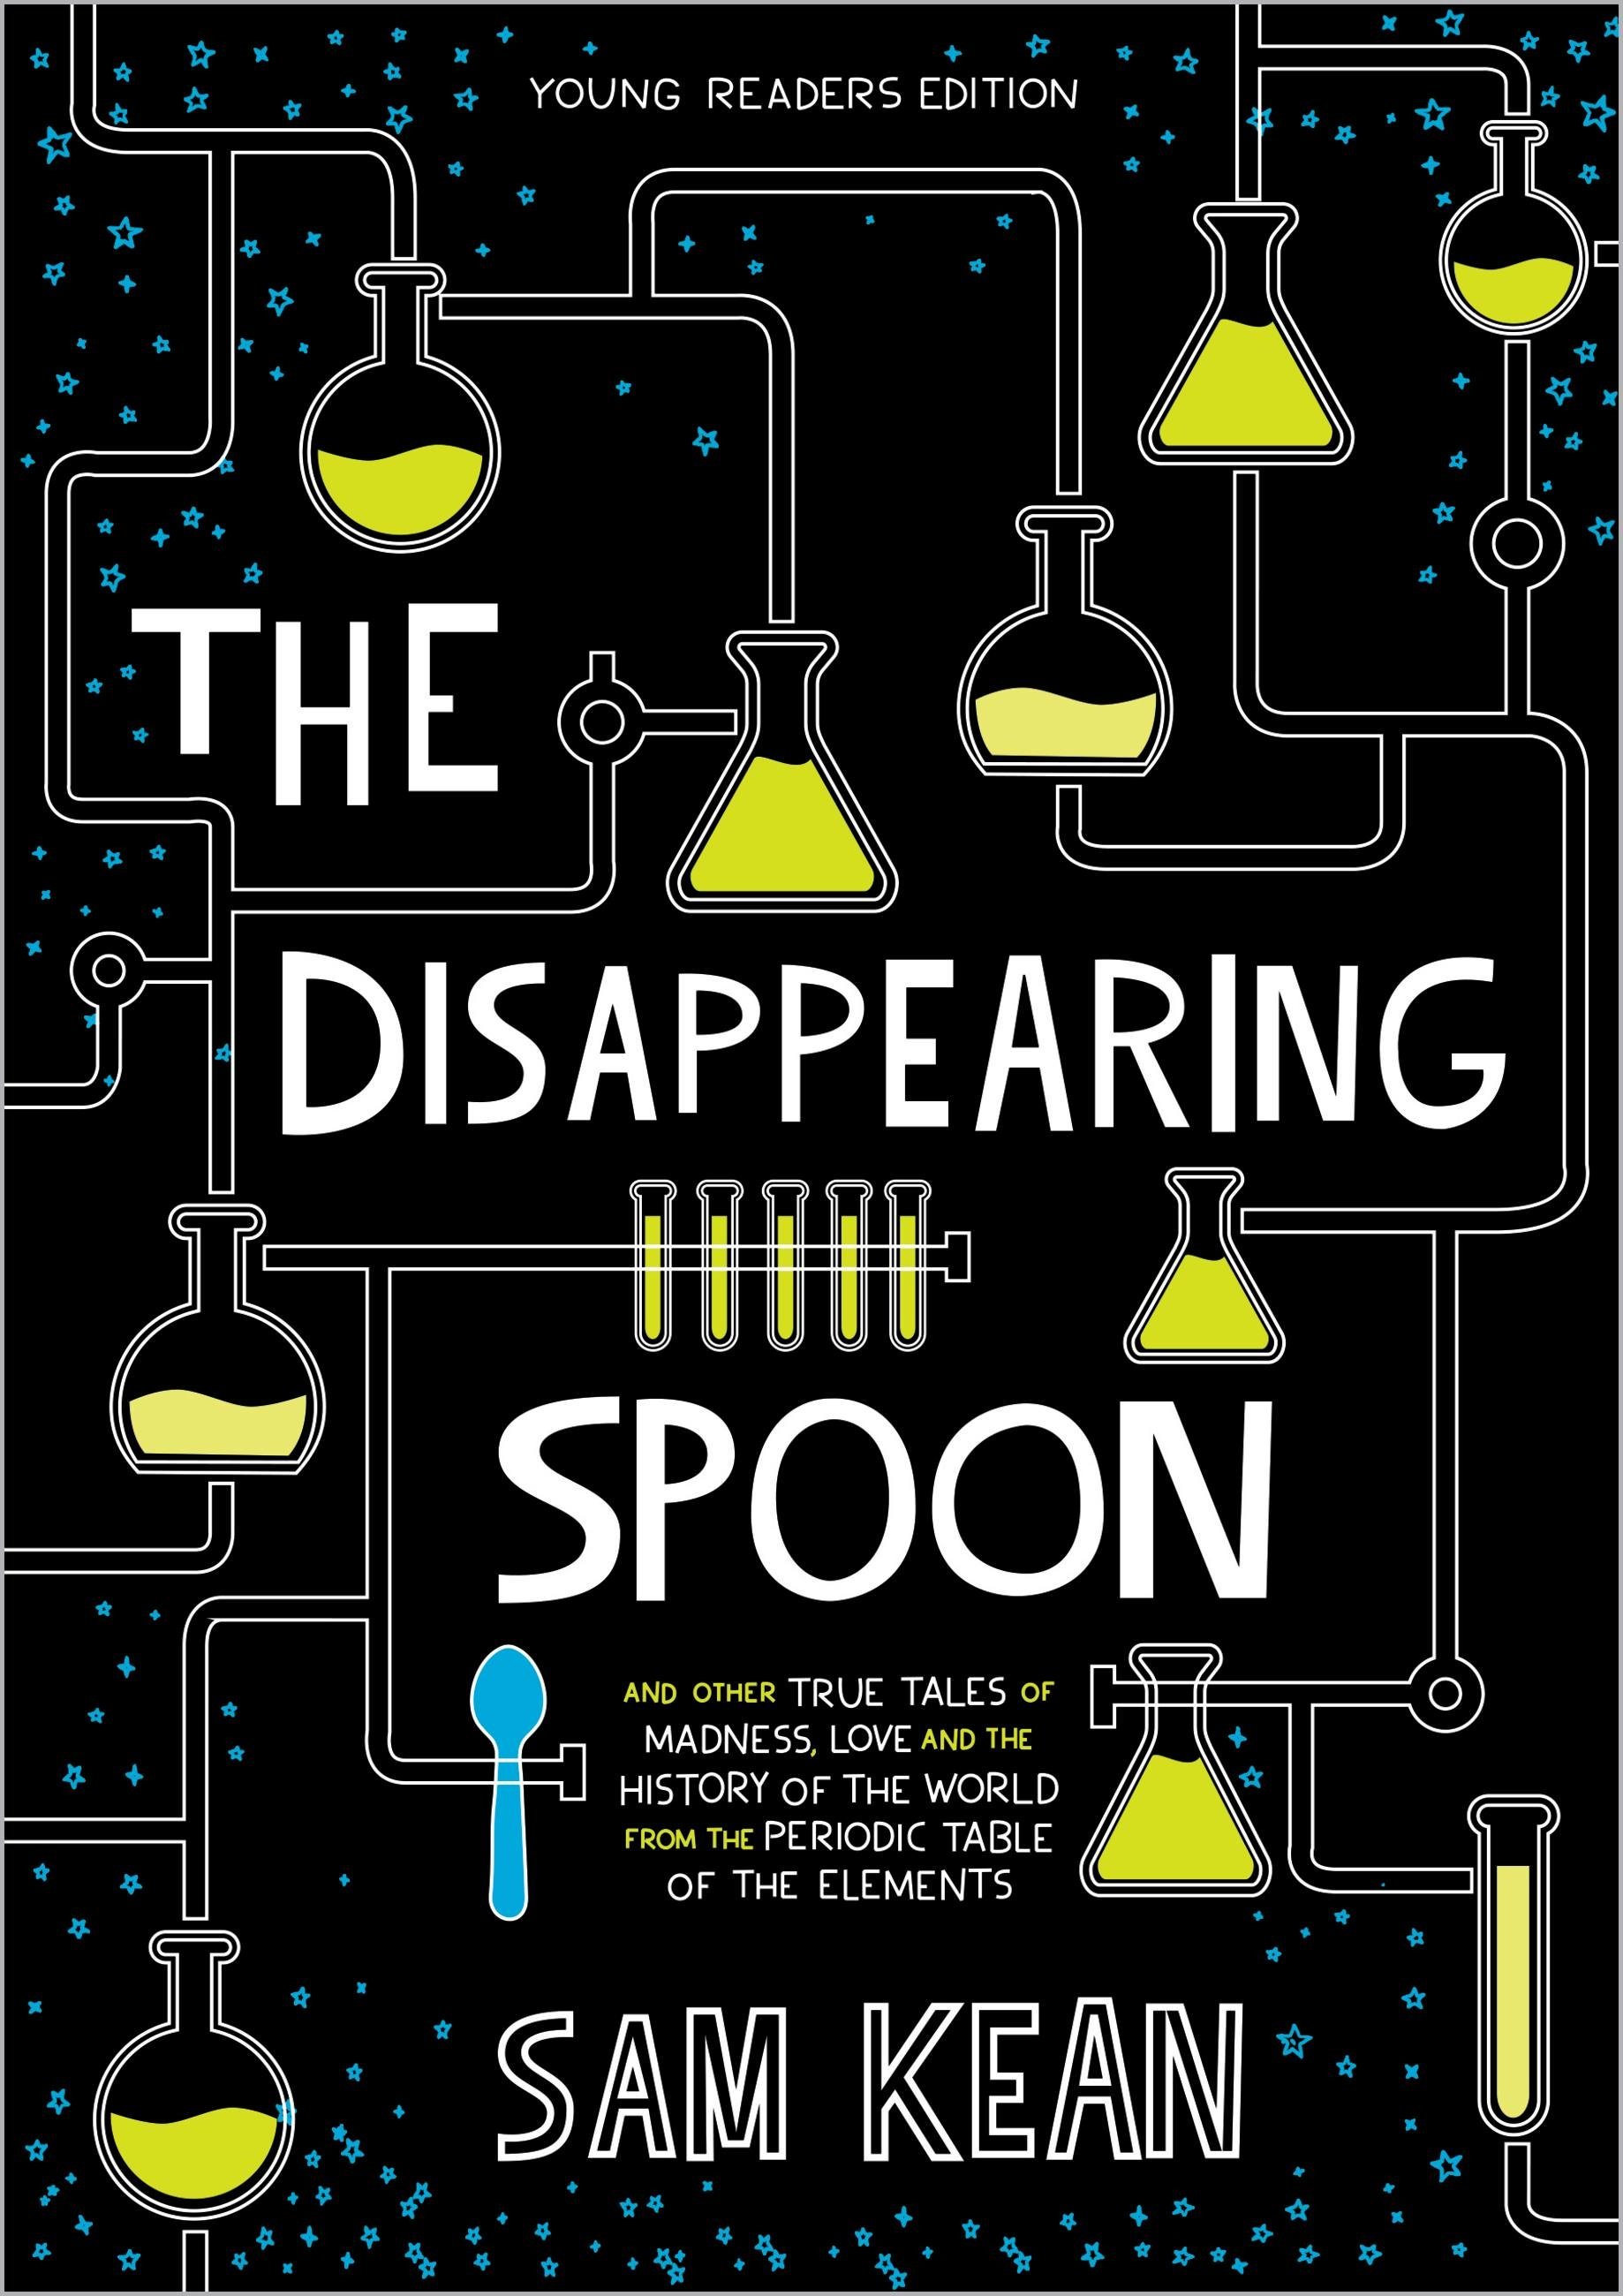 The Disappearing Spoon: And Other True Tales of Rivalry, Adventure, and the History of the World from the Periodic Table of the Elements (Young Readers Edition)